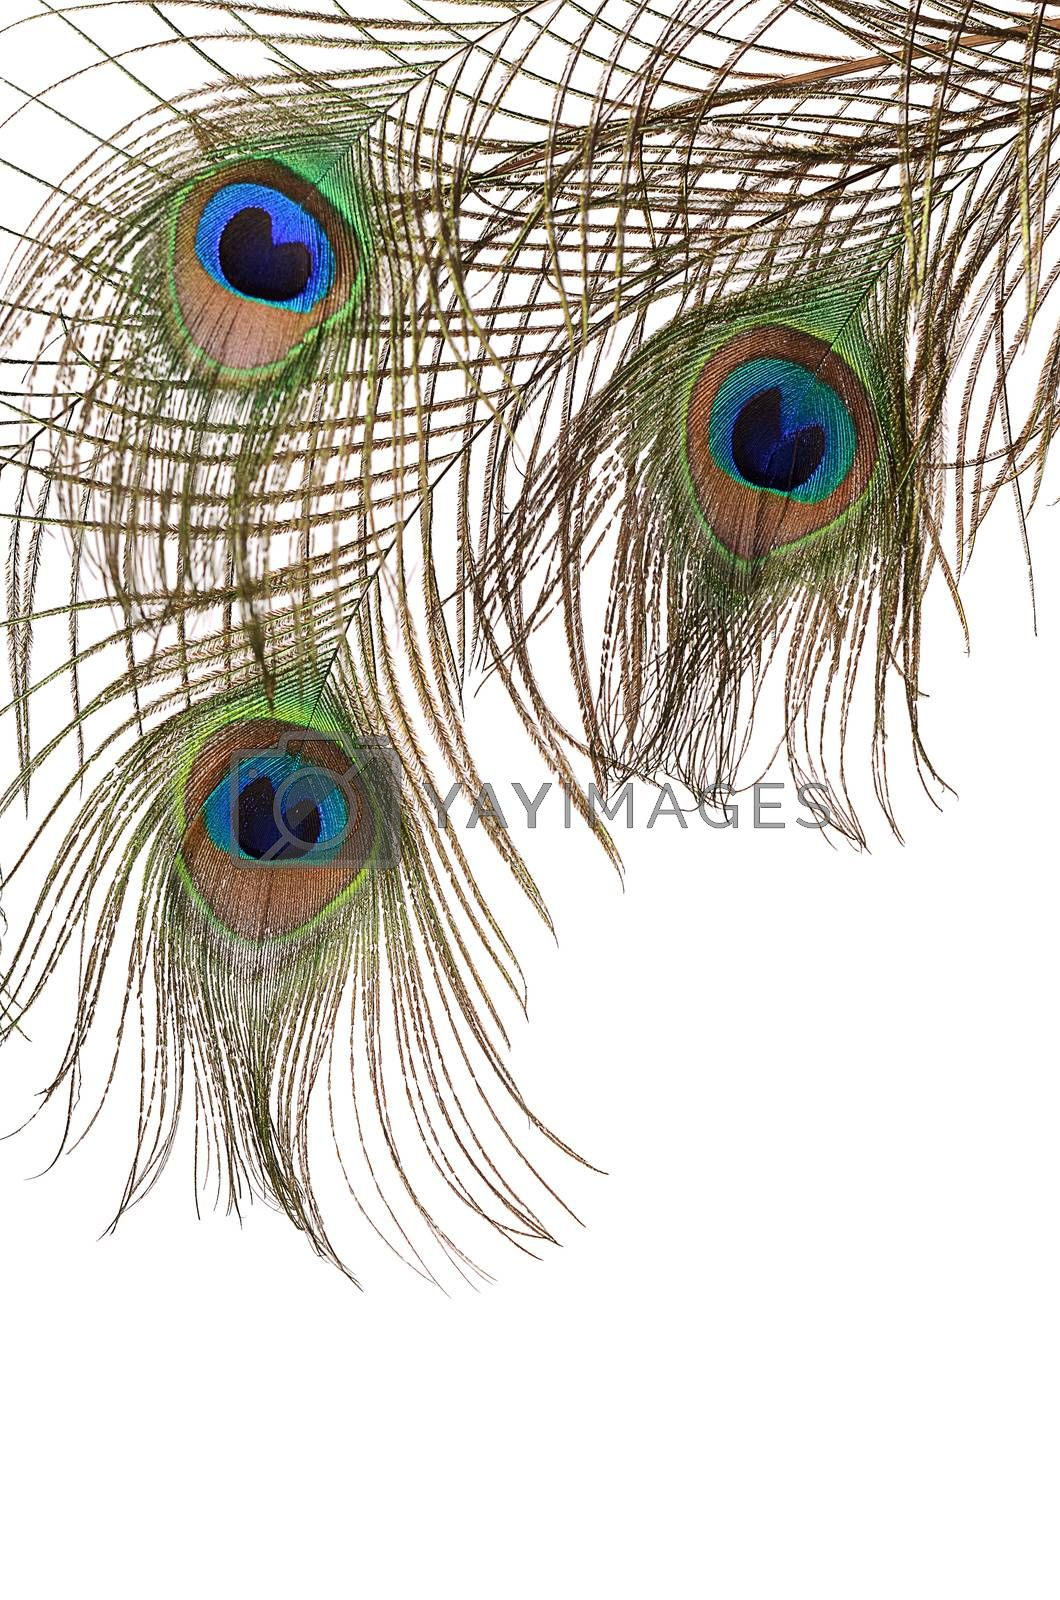 Royalty free image of Feather of peacock isolated on white background by SvetaVo